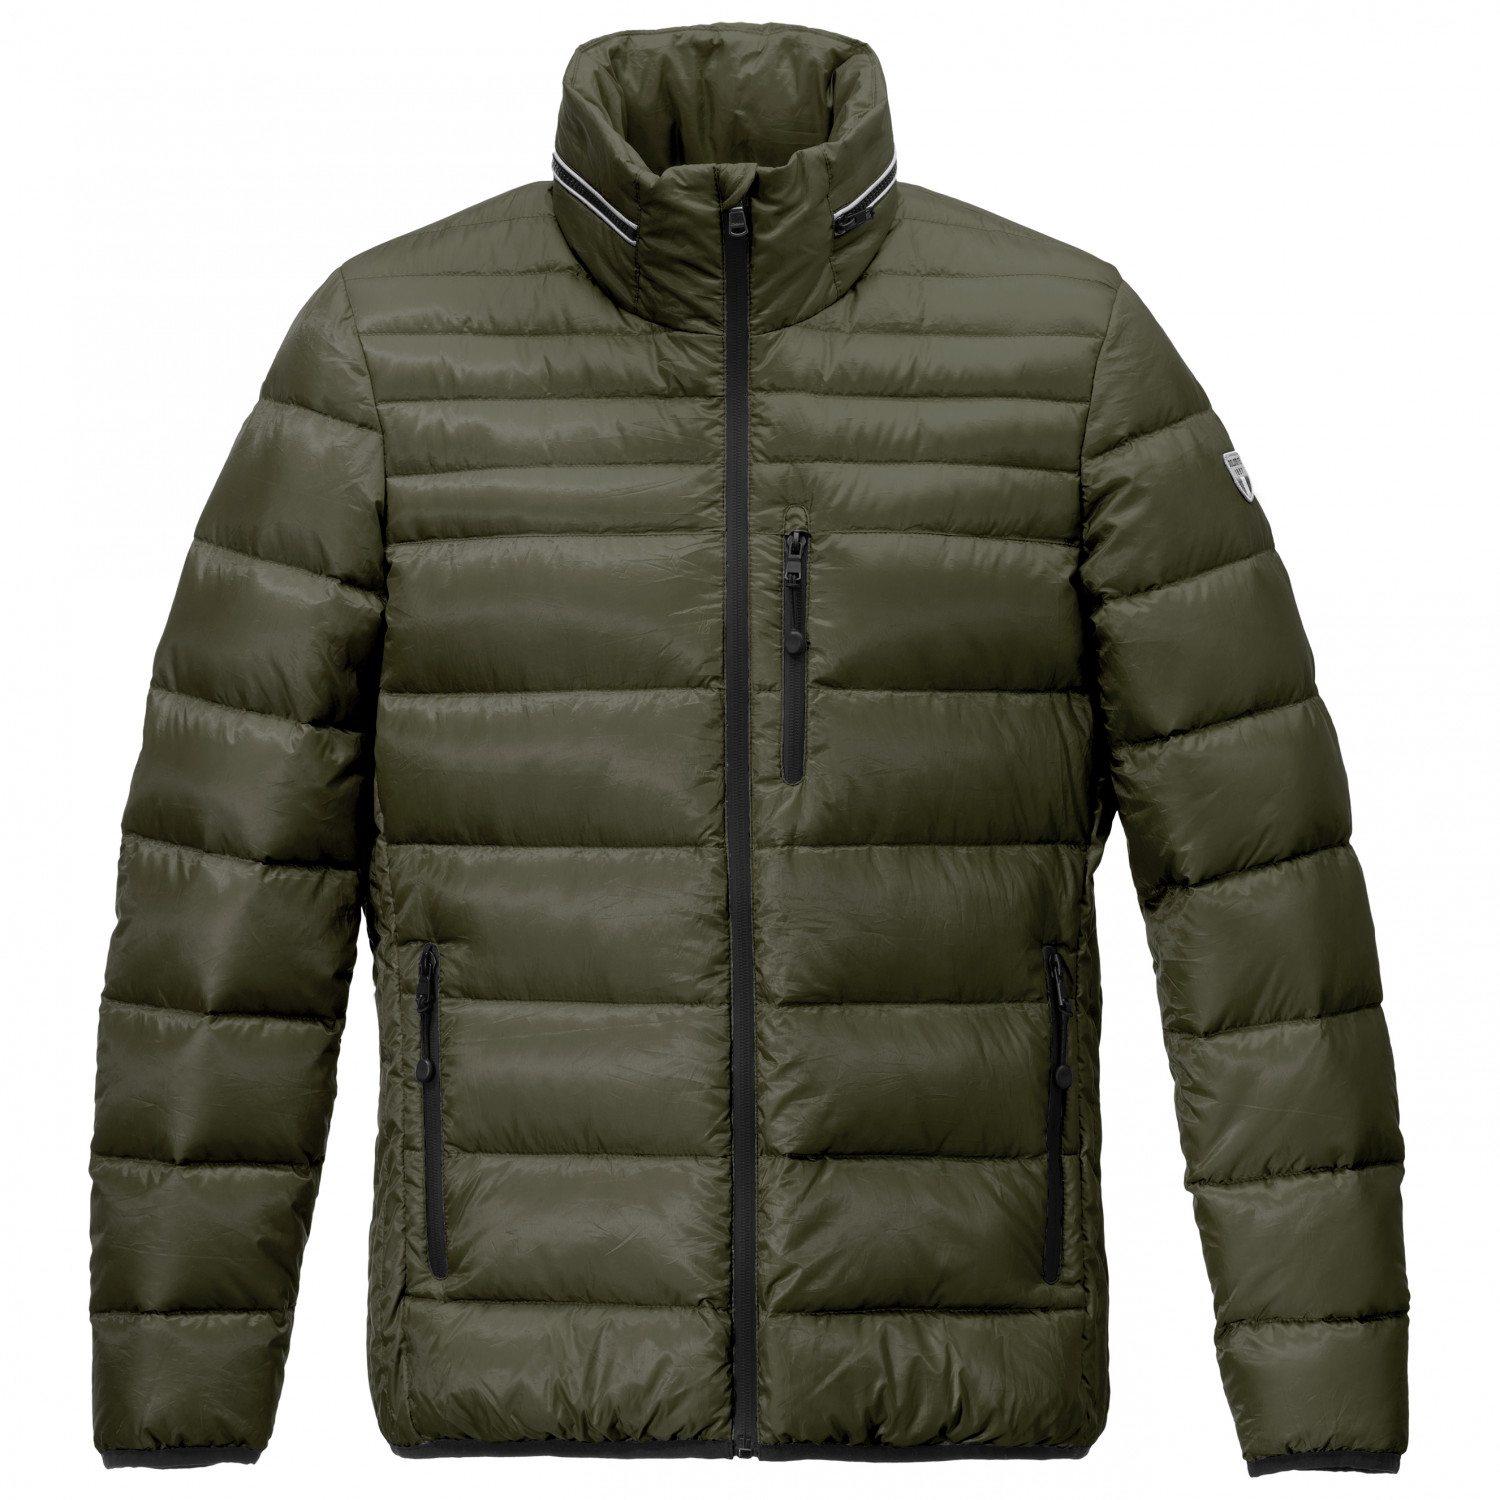 outlet 7e08d 9eb59 Dolomite - Jacket Corvara 2 MJ - Giacca in piumino - Military Green   S